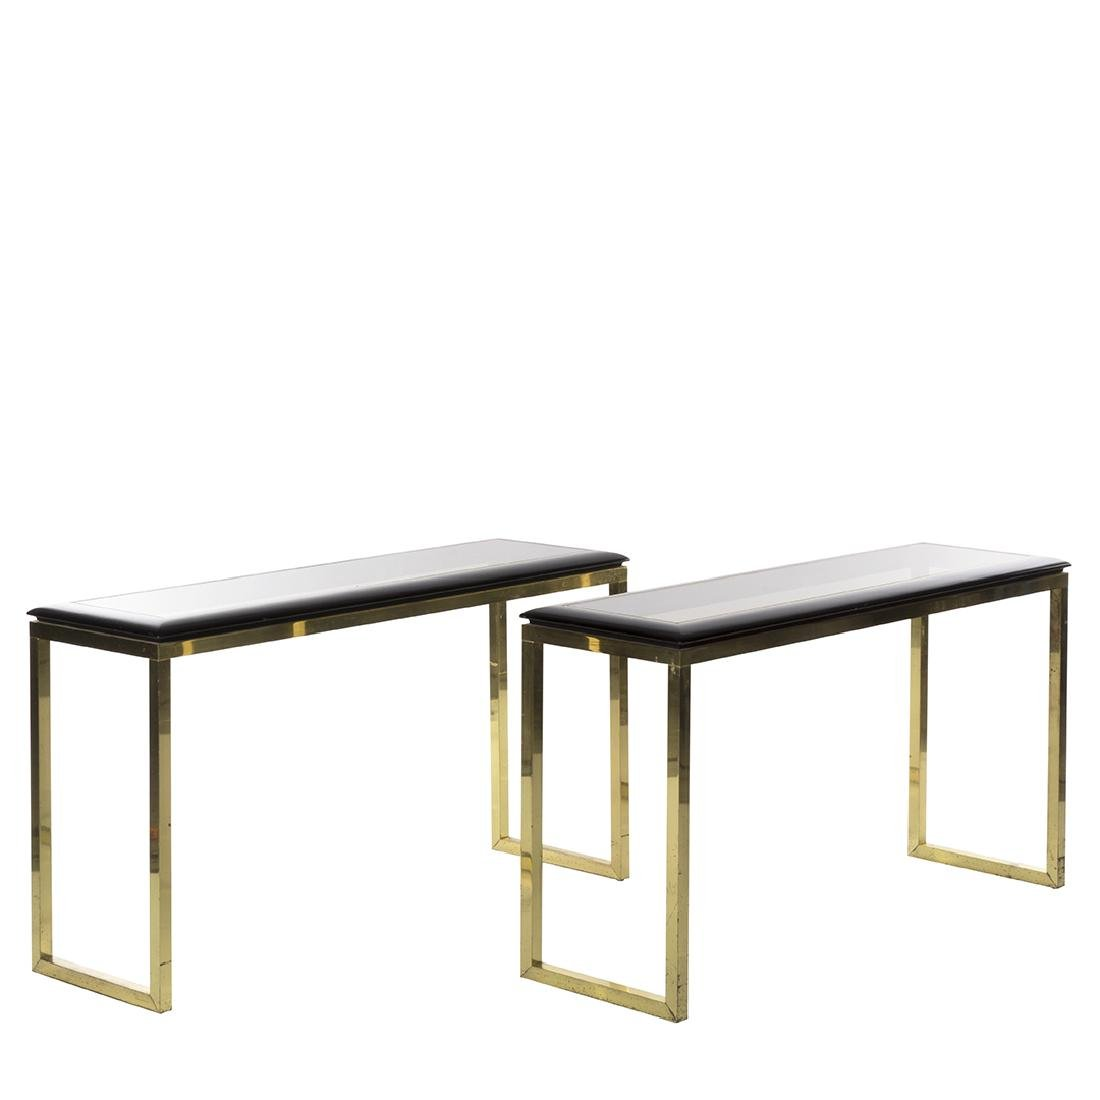 Oak and Brass Console Tables (2)